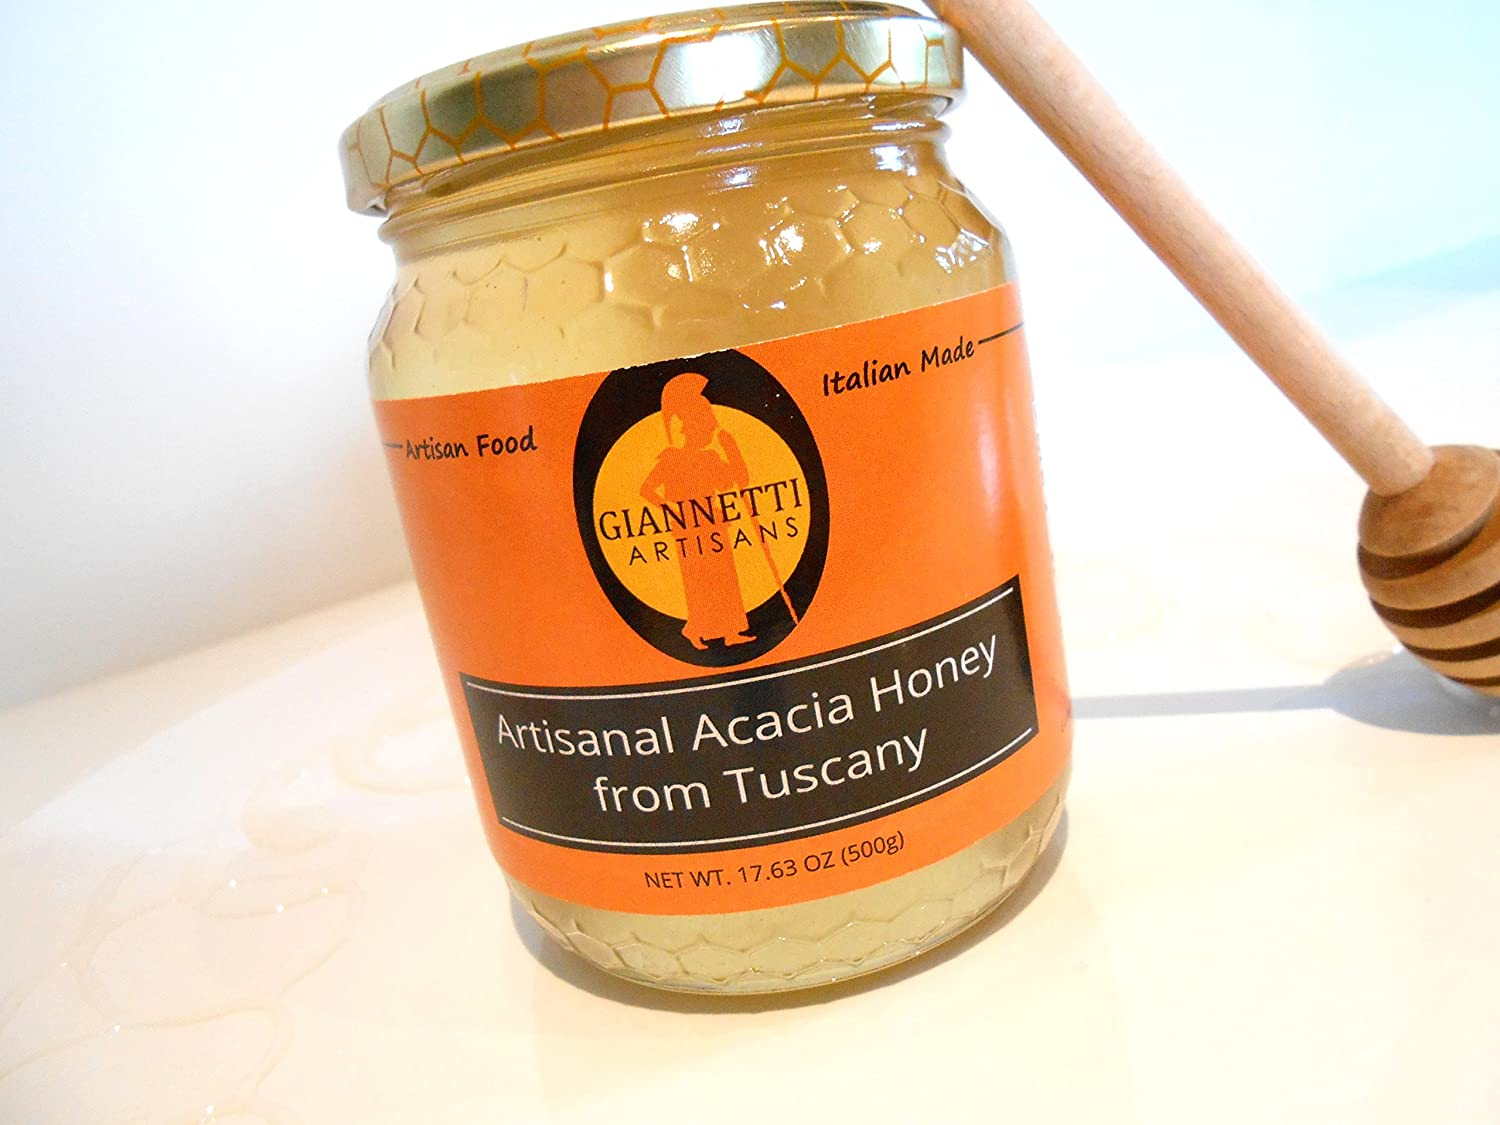 Giannetti Artisans Imported Premium Italian Acacia Honey - Unprocessed Naturally Handmade in Italy - 17.63 oz